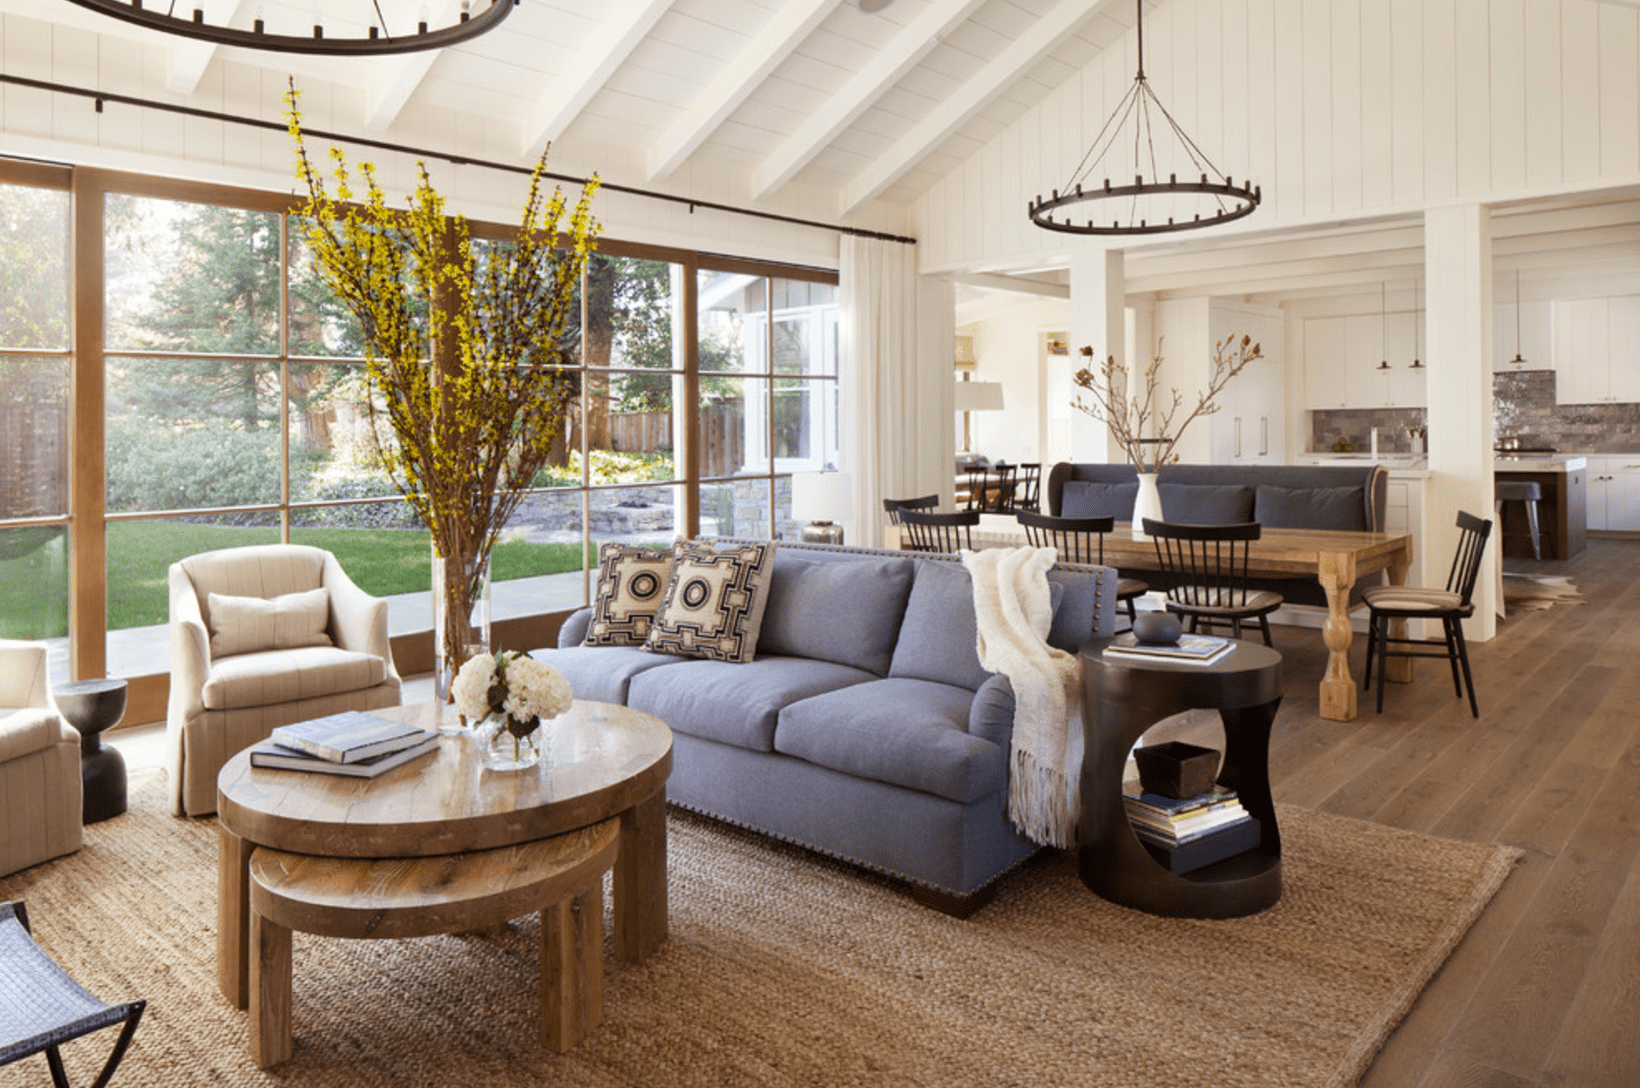 12 Farmhouse-Style Living Room Tips